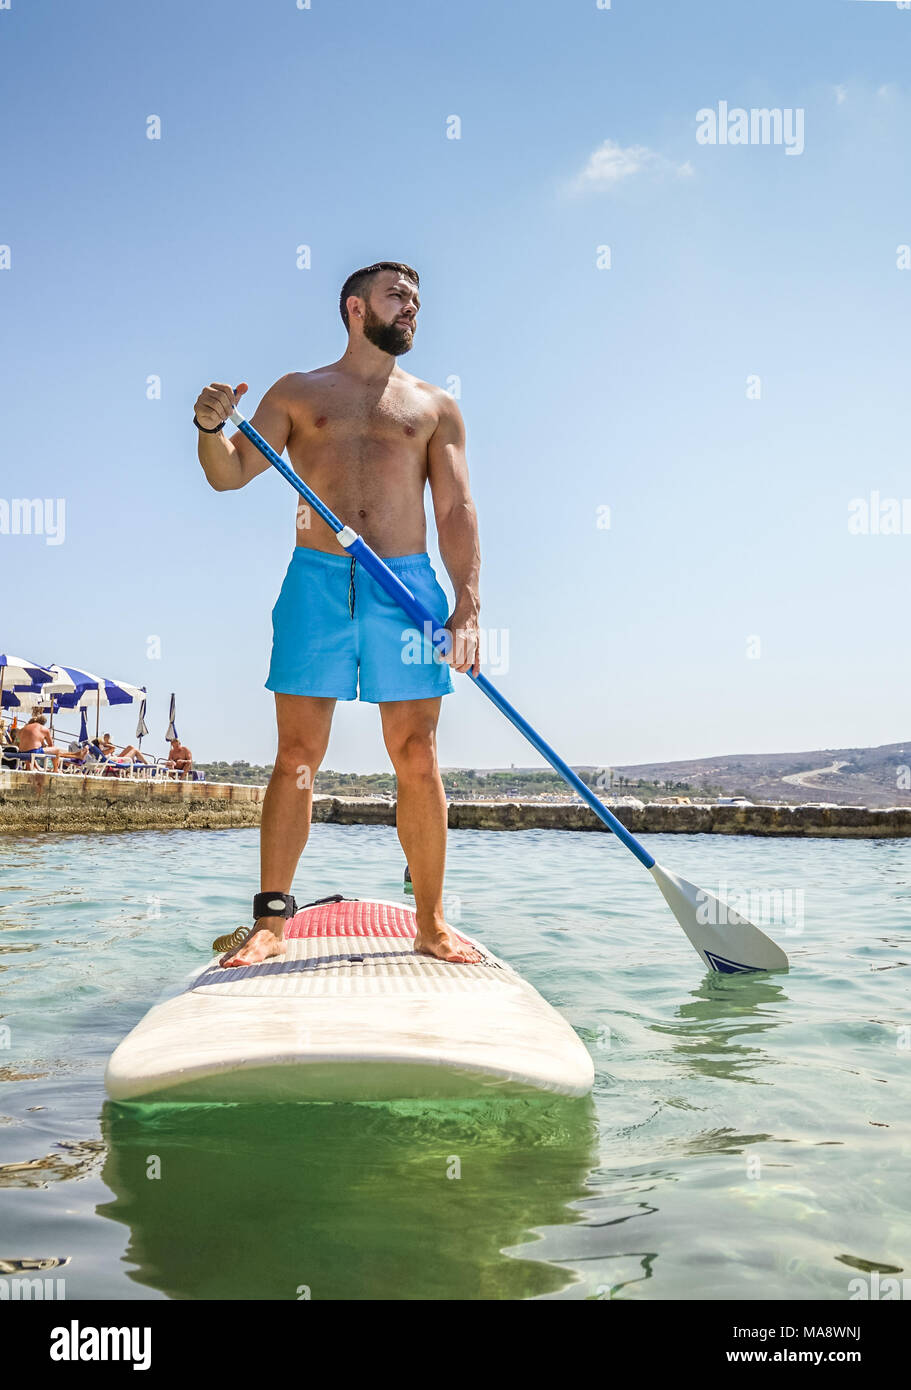 Man paddling on Sup board in blue sea. Beginner paddler Summer active vacation and water sport concept - Stock Image